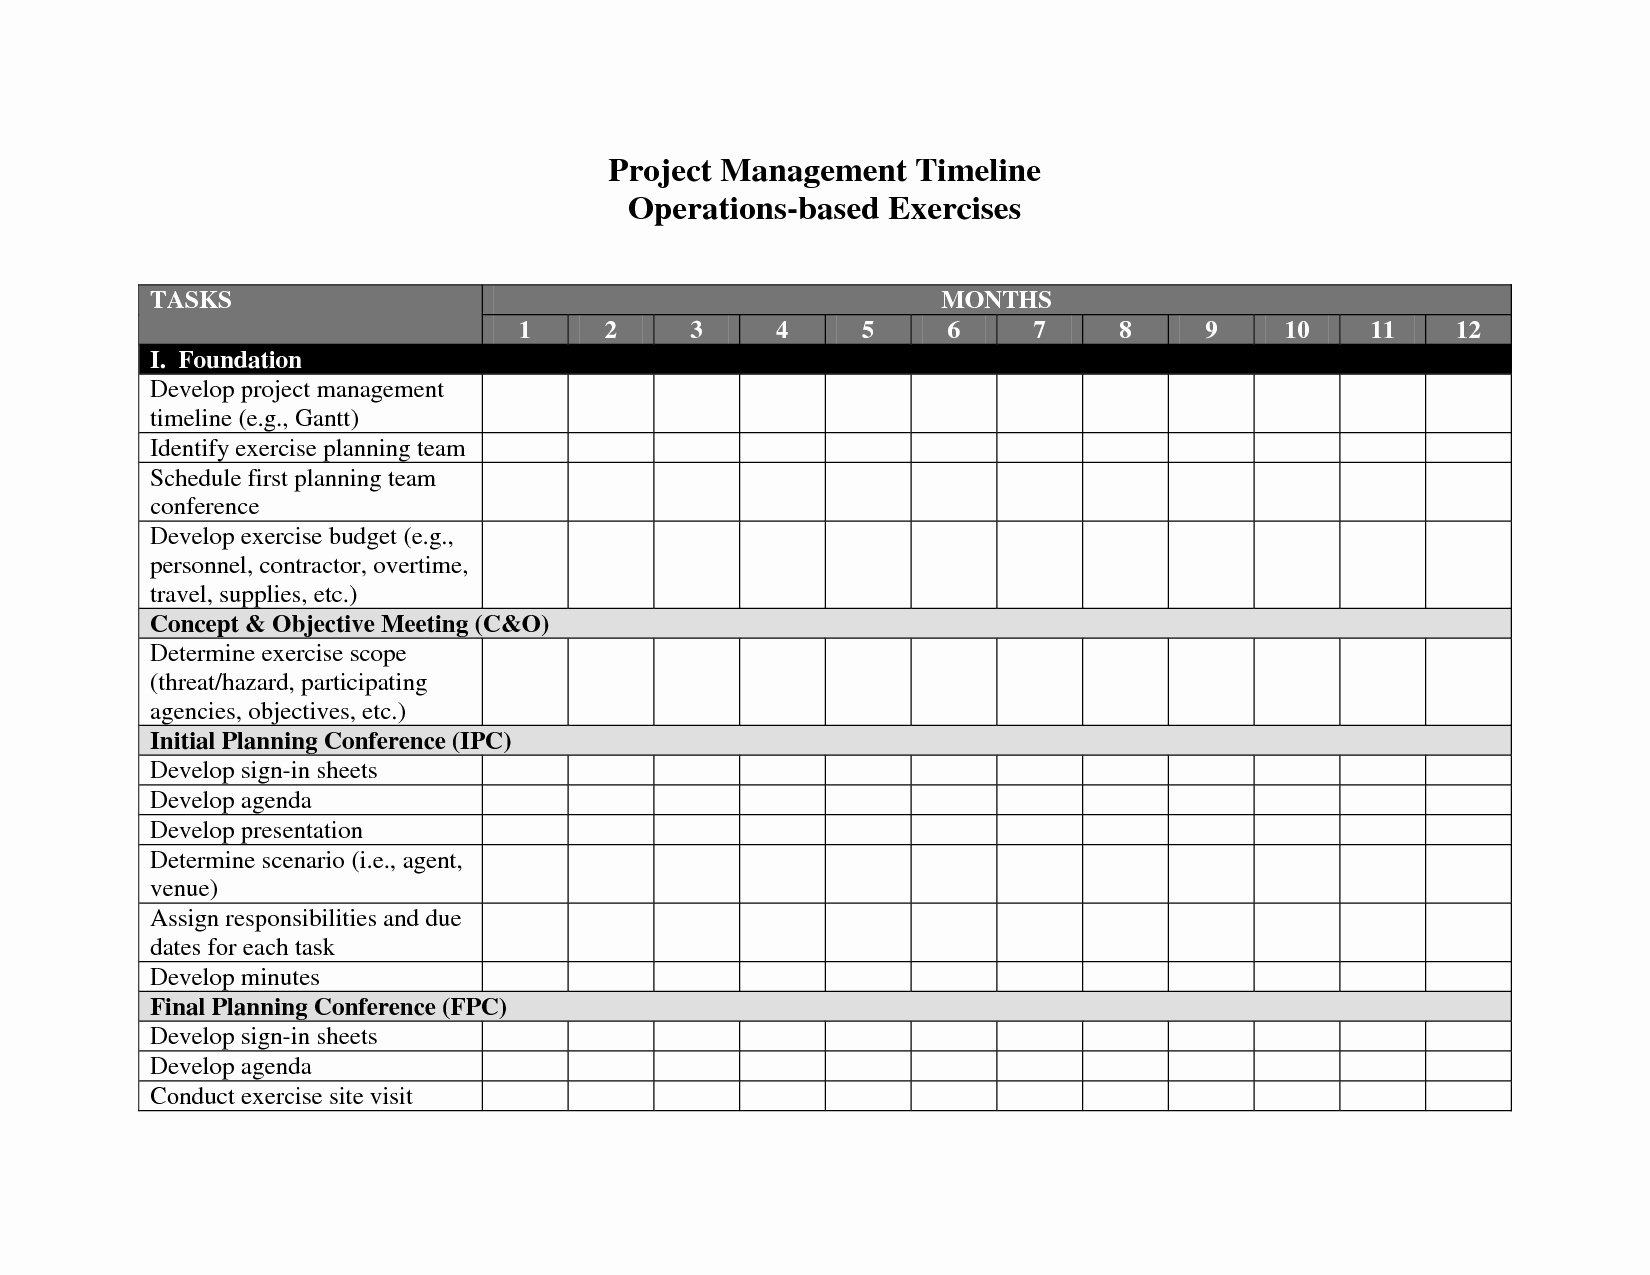 Project Timeline Template Word Best Of Project Management Templates In Word Example Of Spreadshee